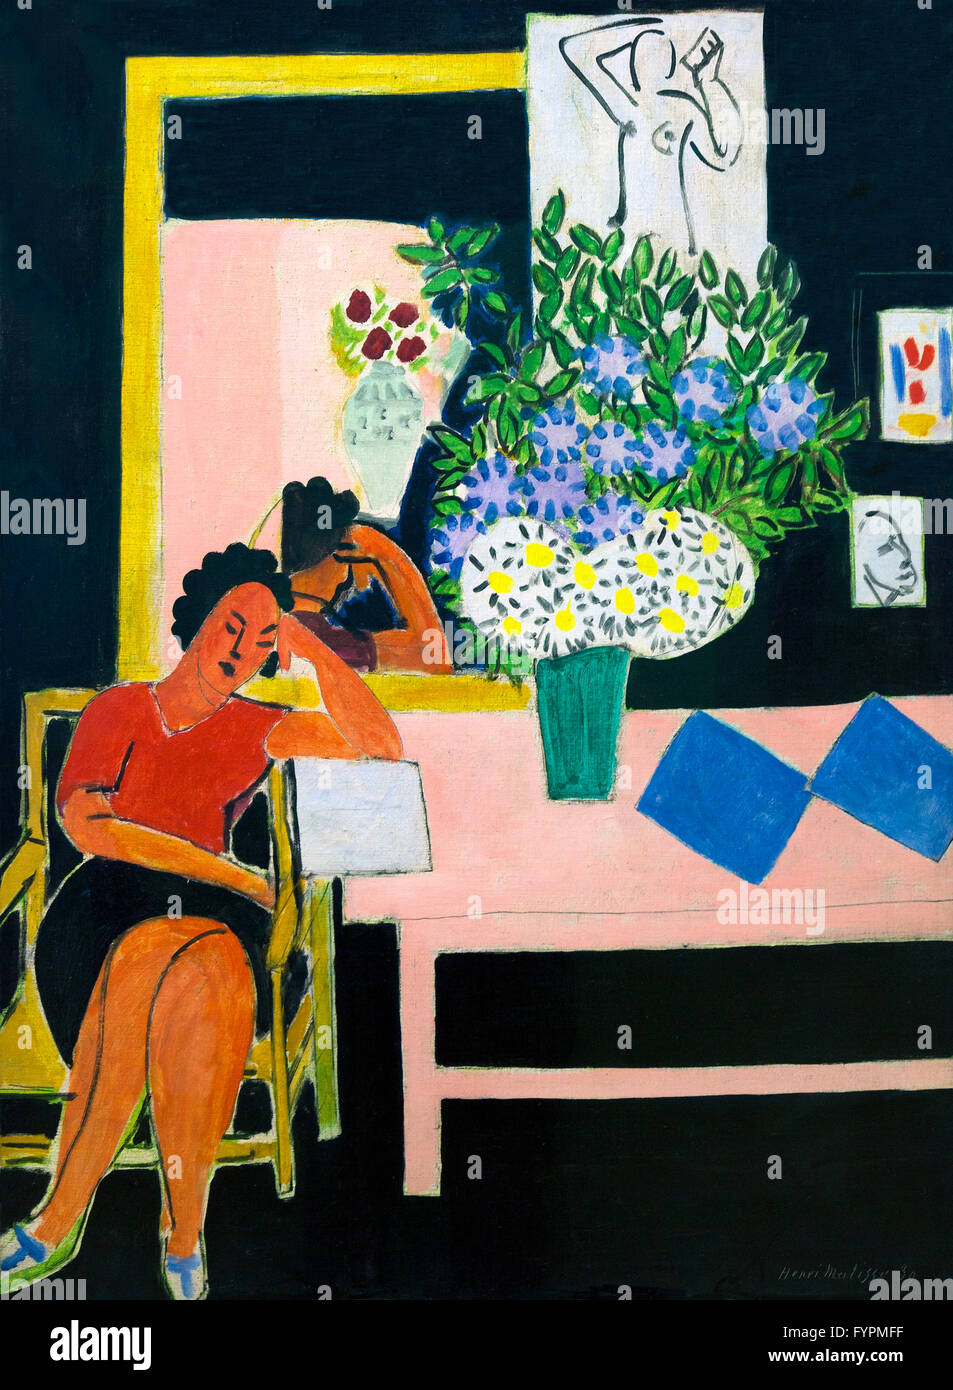 Woman Reading, Black Background, Liseuse sur Fond Noir, by Henri Matisse, 1939, Centre Pompidou, Paris, France, - Stock Image